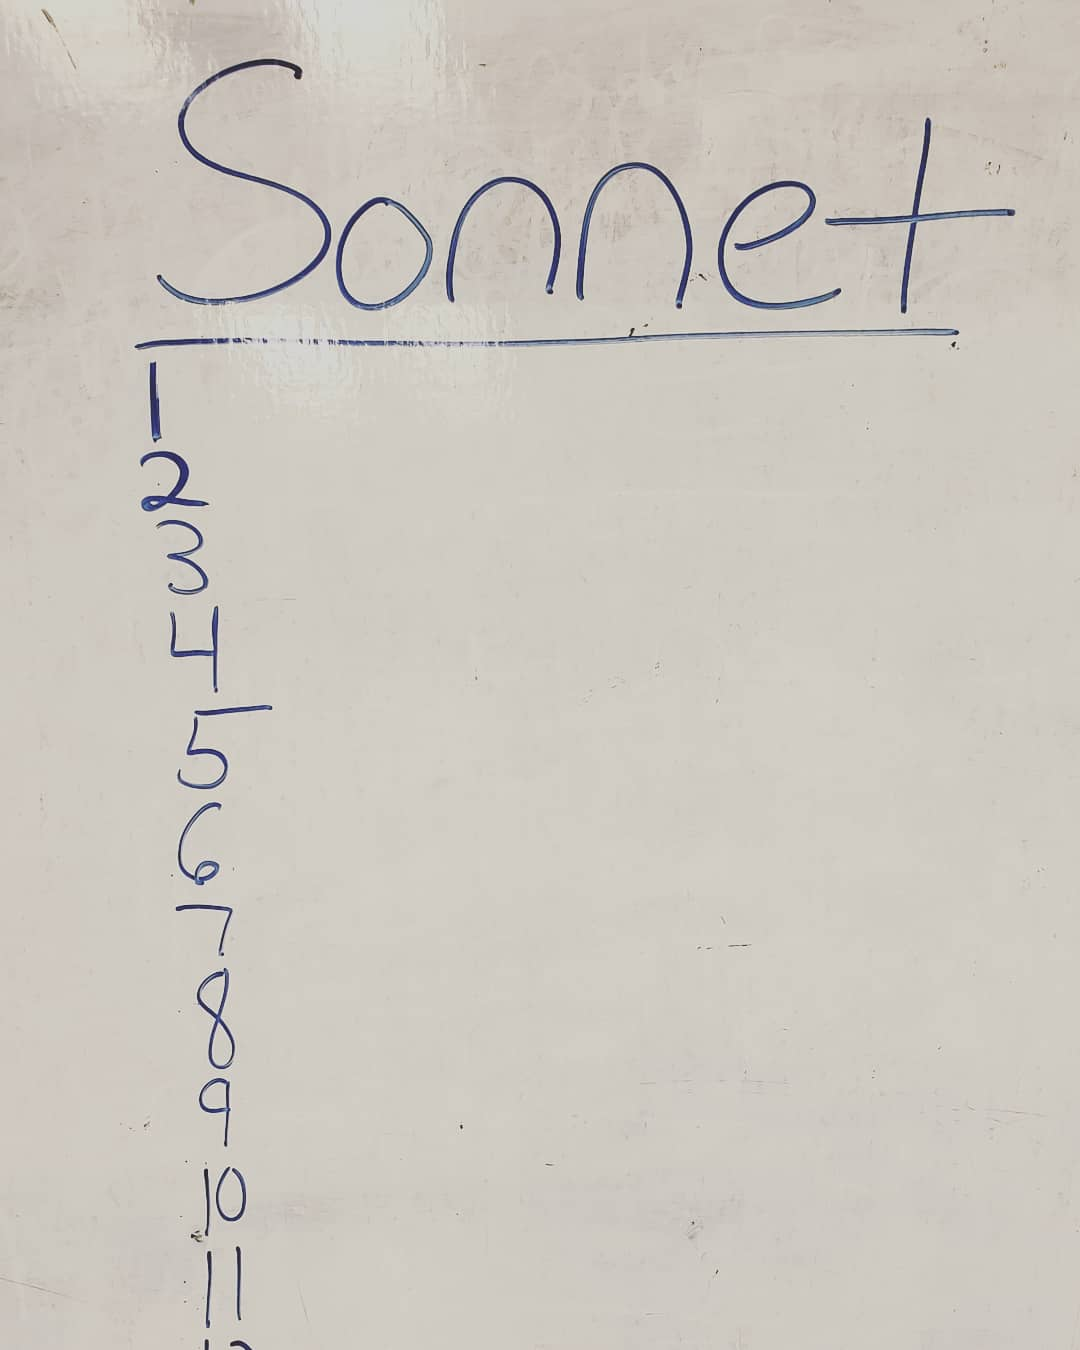 on a white dry erase school board the word Sonnet is written at the top with a vertical stack of numbers 1-14 underneath it. All the writing is in blue.